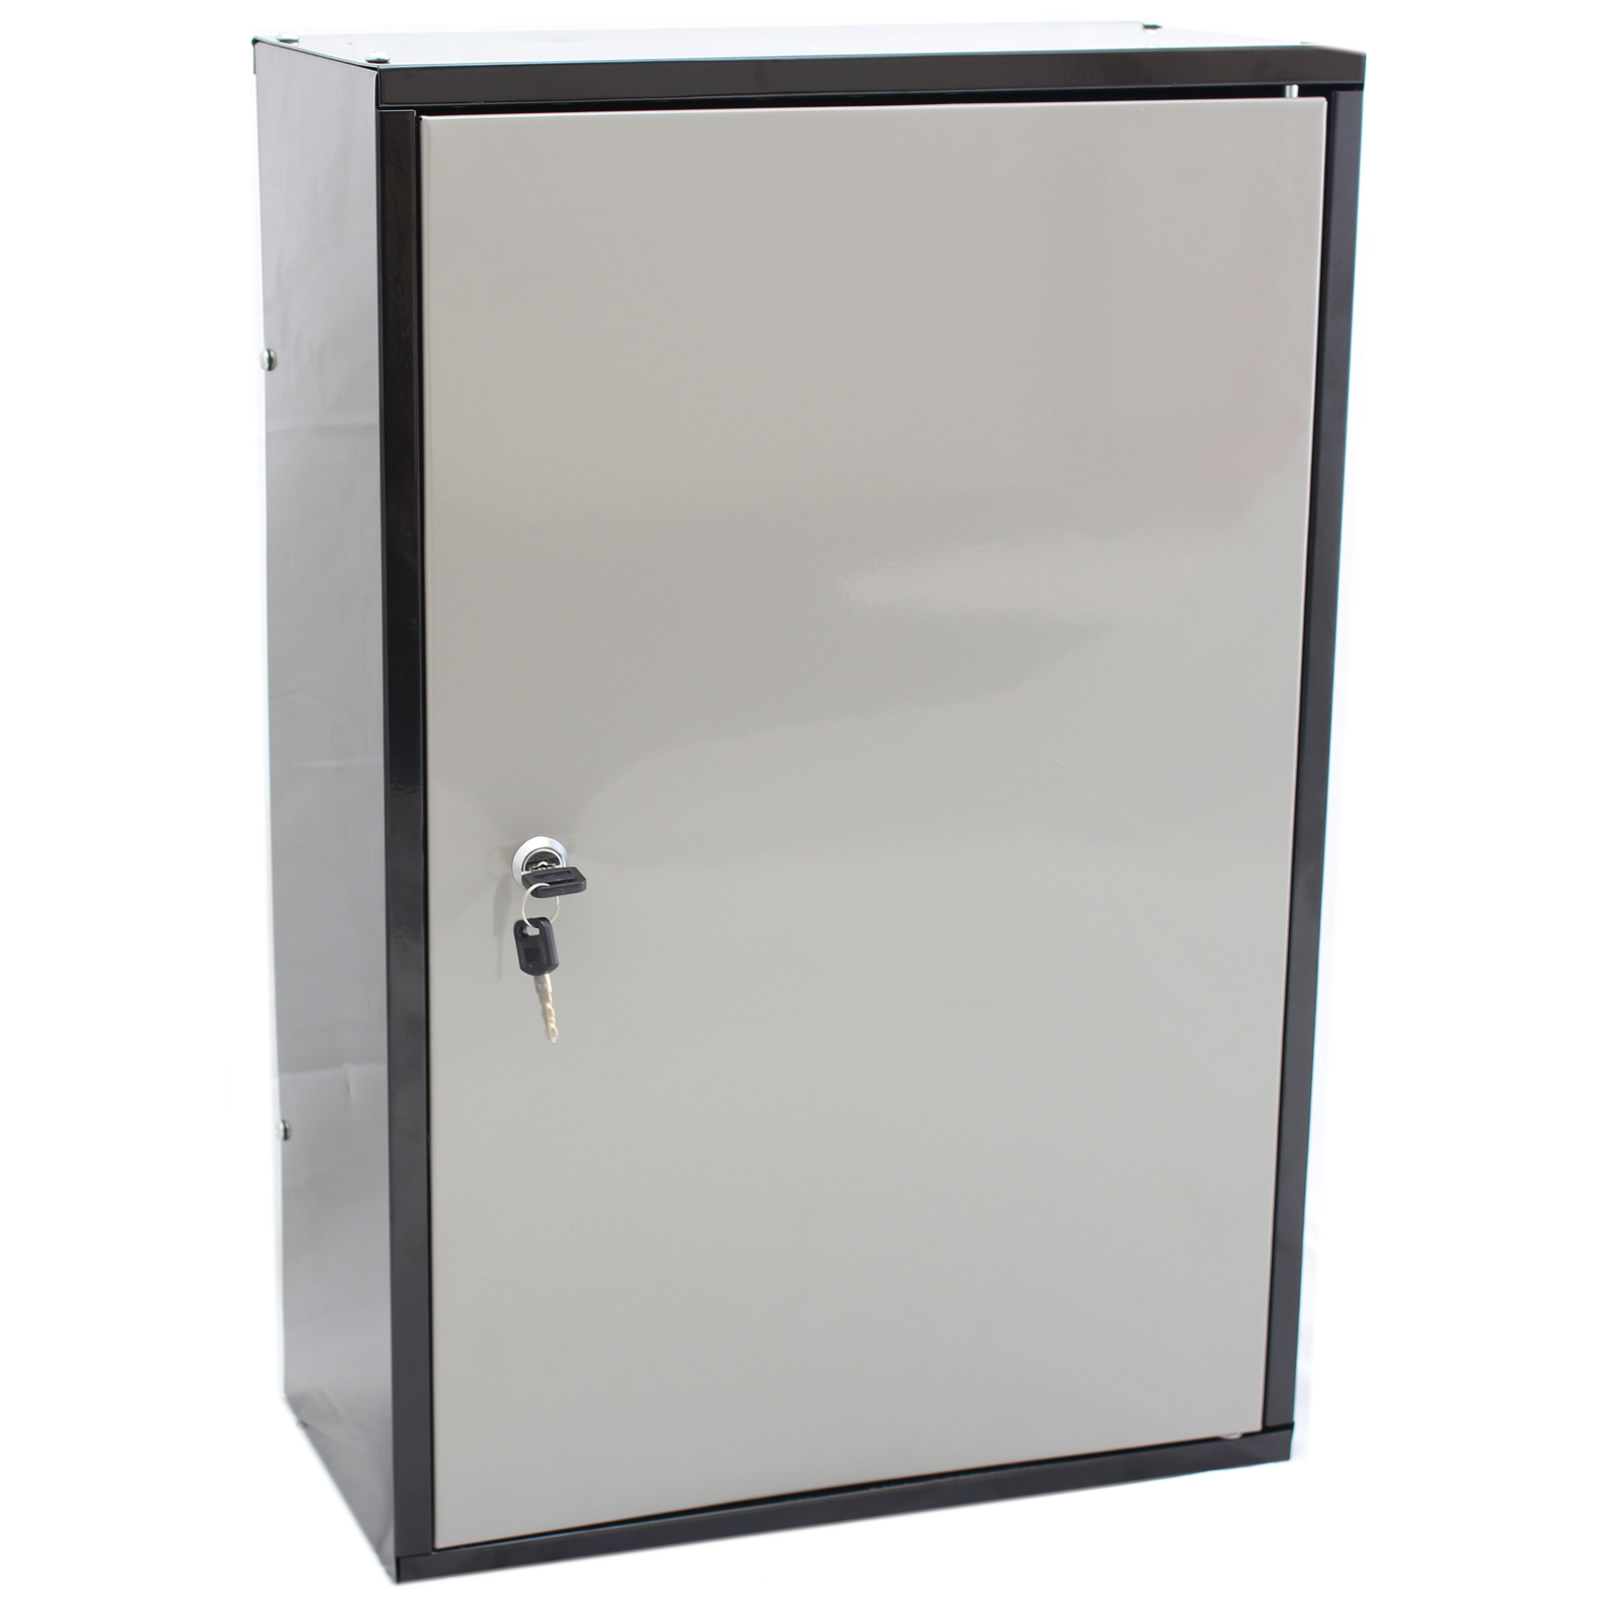 Storage Cabinet With Locking Doors Metal Storage Cabinet With Lock Image Of Classic Locking Wood